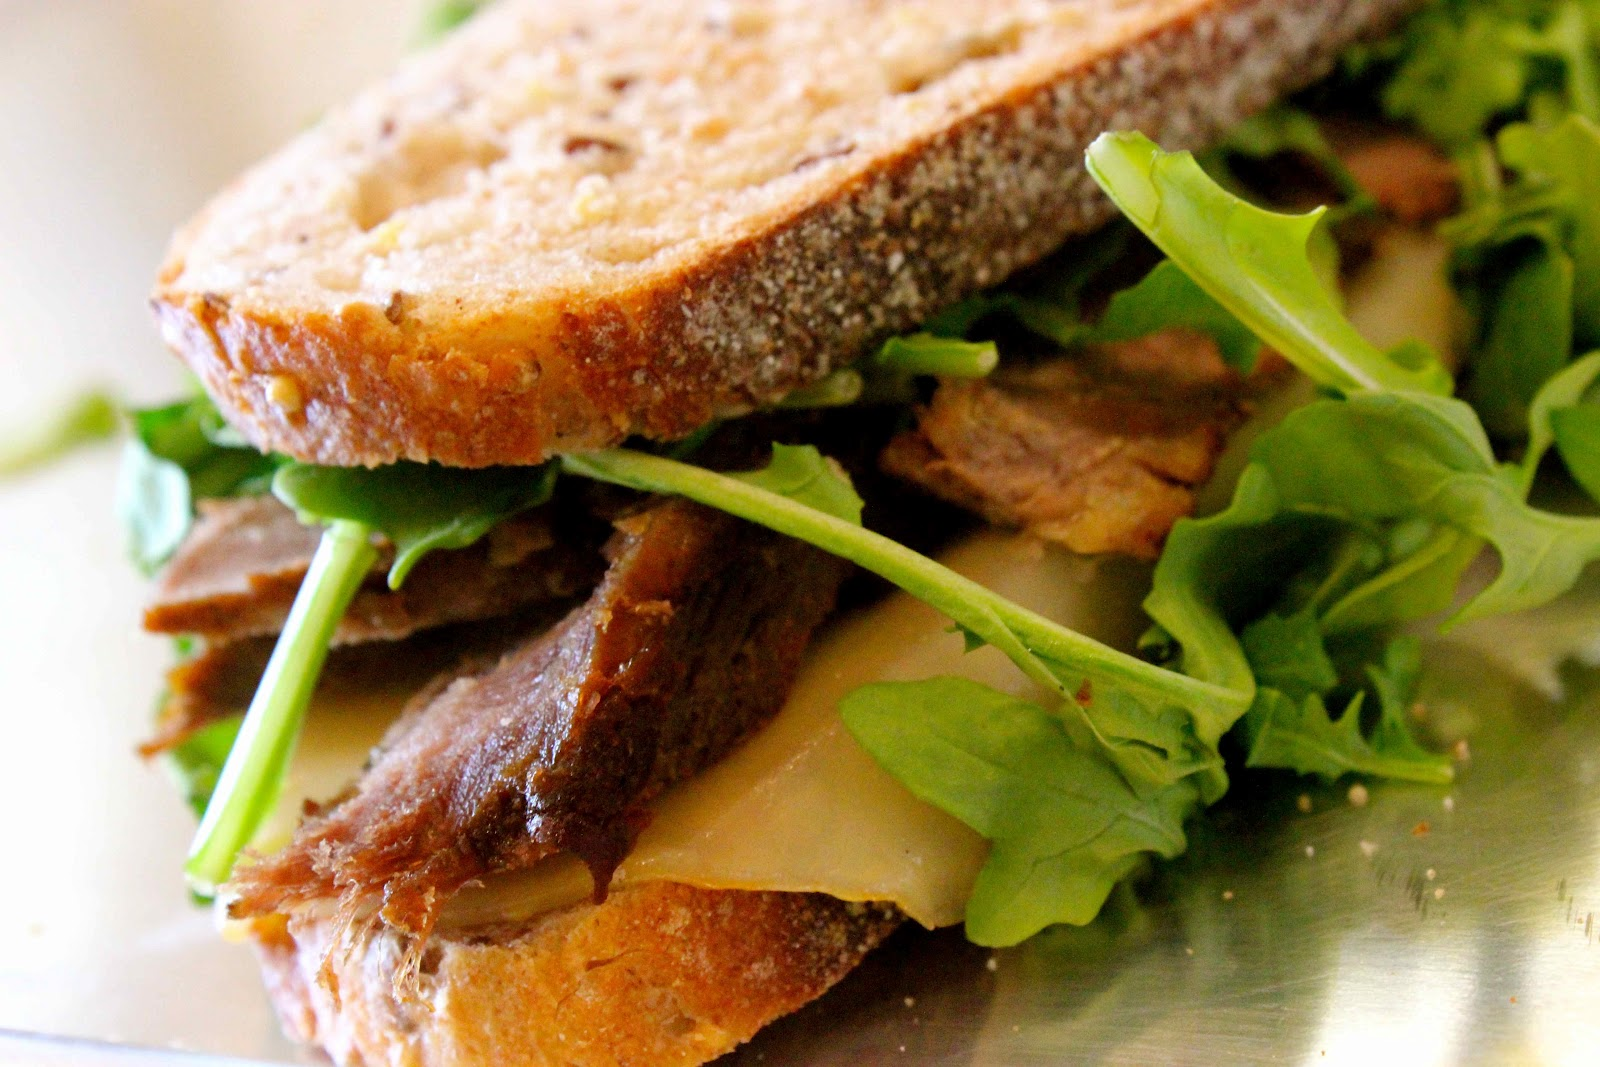 ... : Melted Cheese Panini with Organic Arugula and Chipotle Mayonnaise